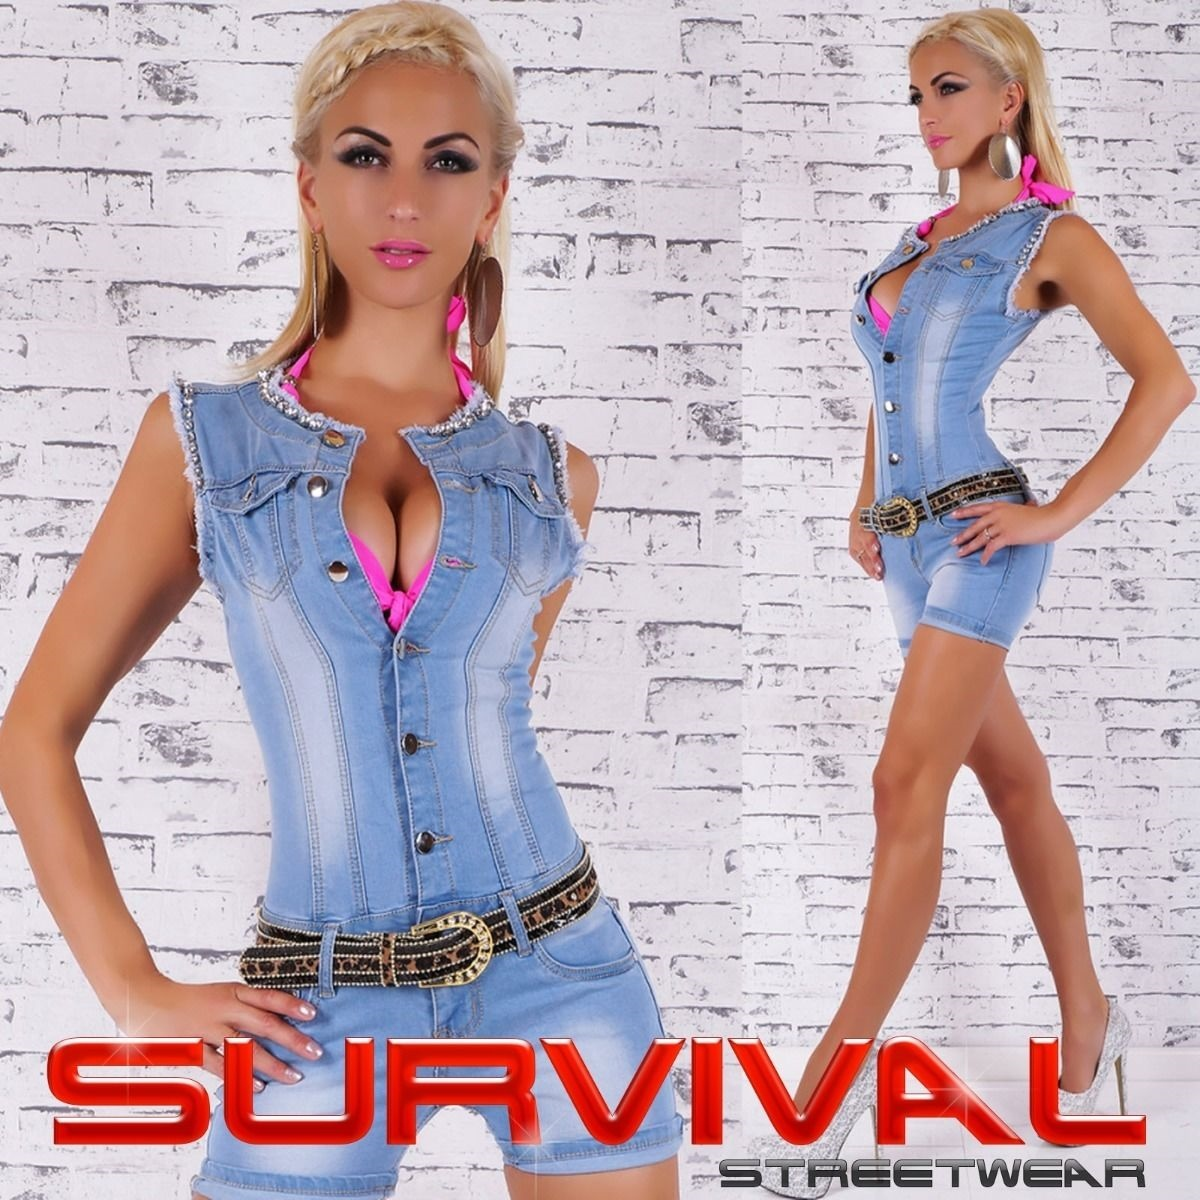 fba36c1e7261 Details about Women s Denim Jumpsuit Shorts Sexy Overalls One Piece FREE  Belt Size 8 10 12 14